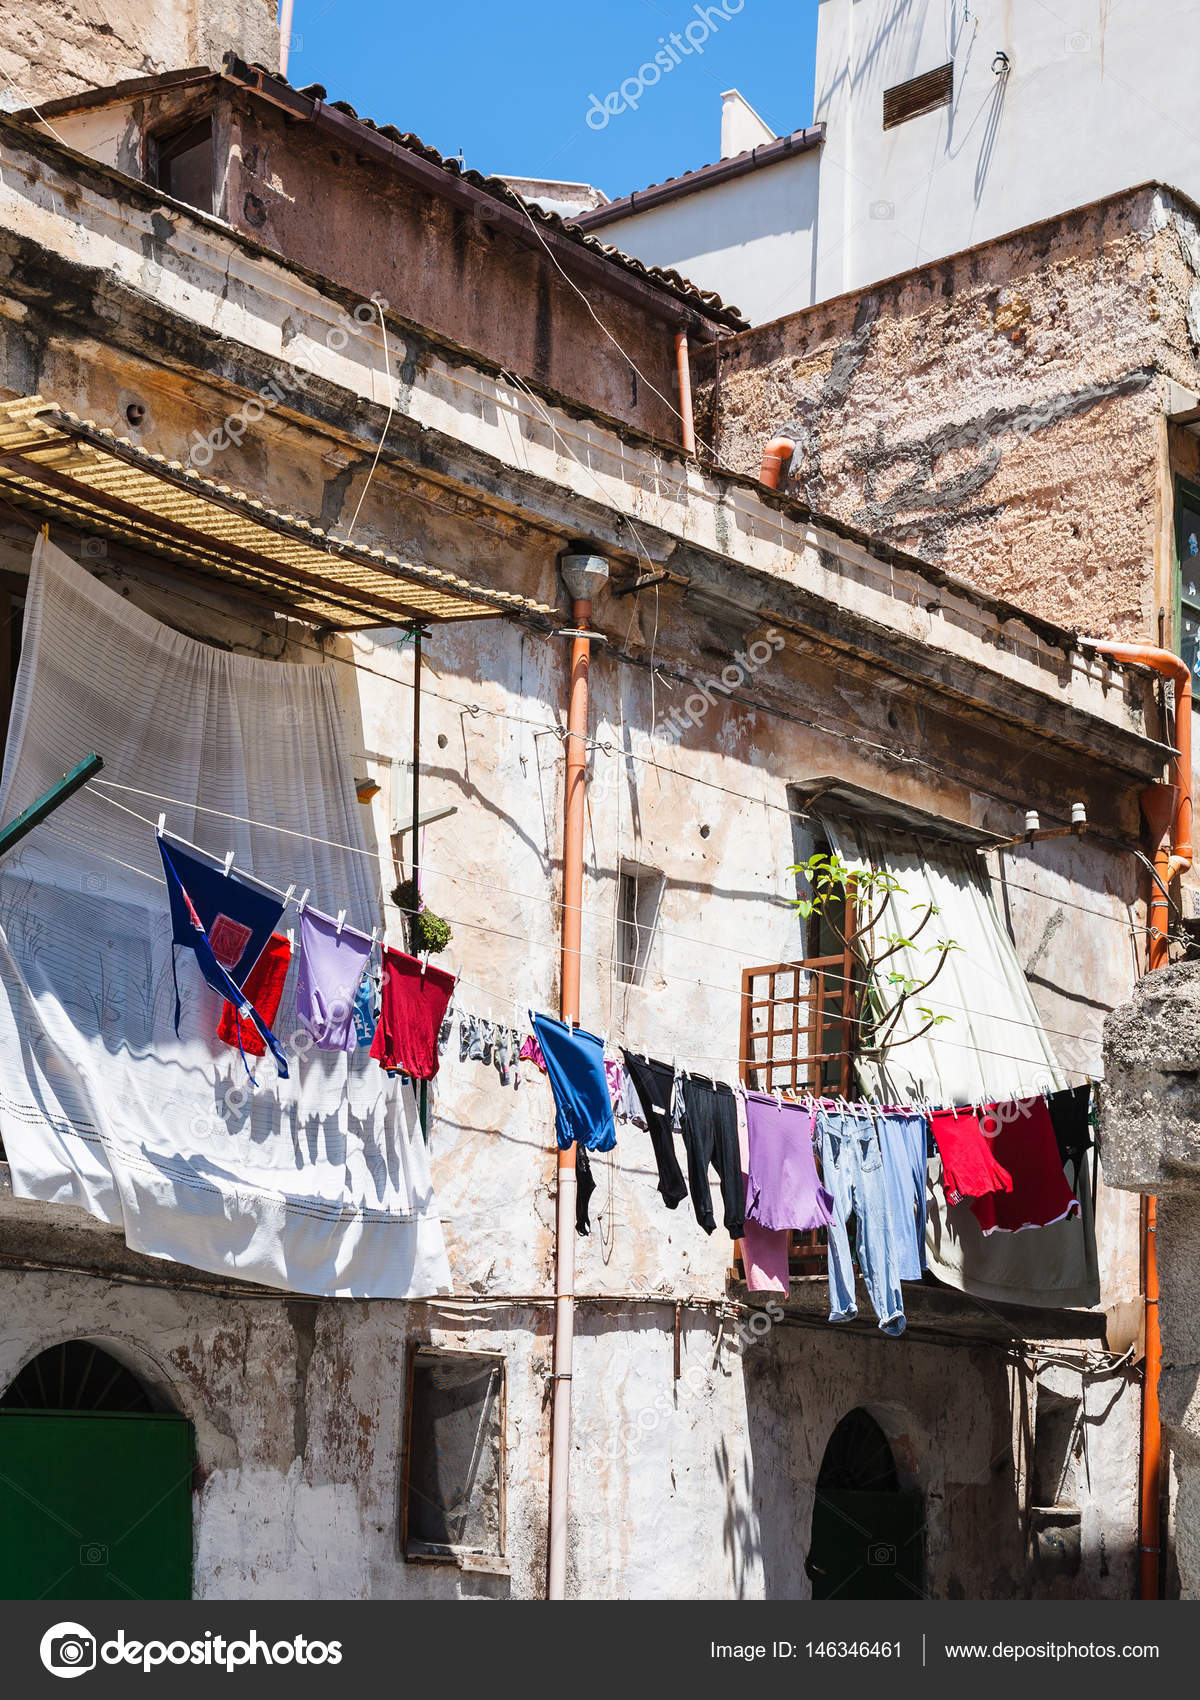 old urban house in Palermo city — Stock Photo © vvoennyy #146346461